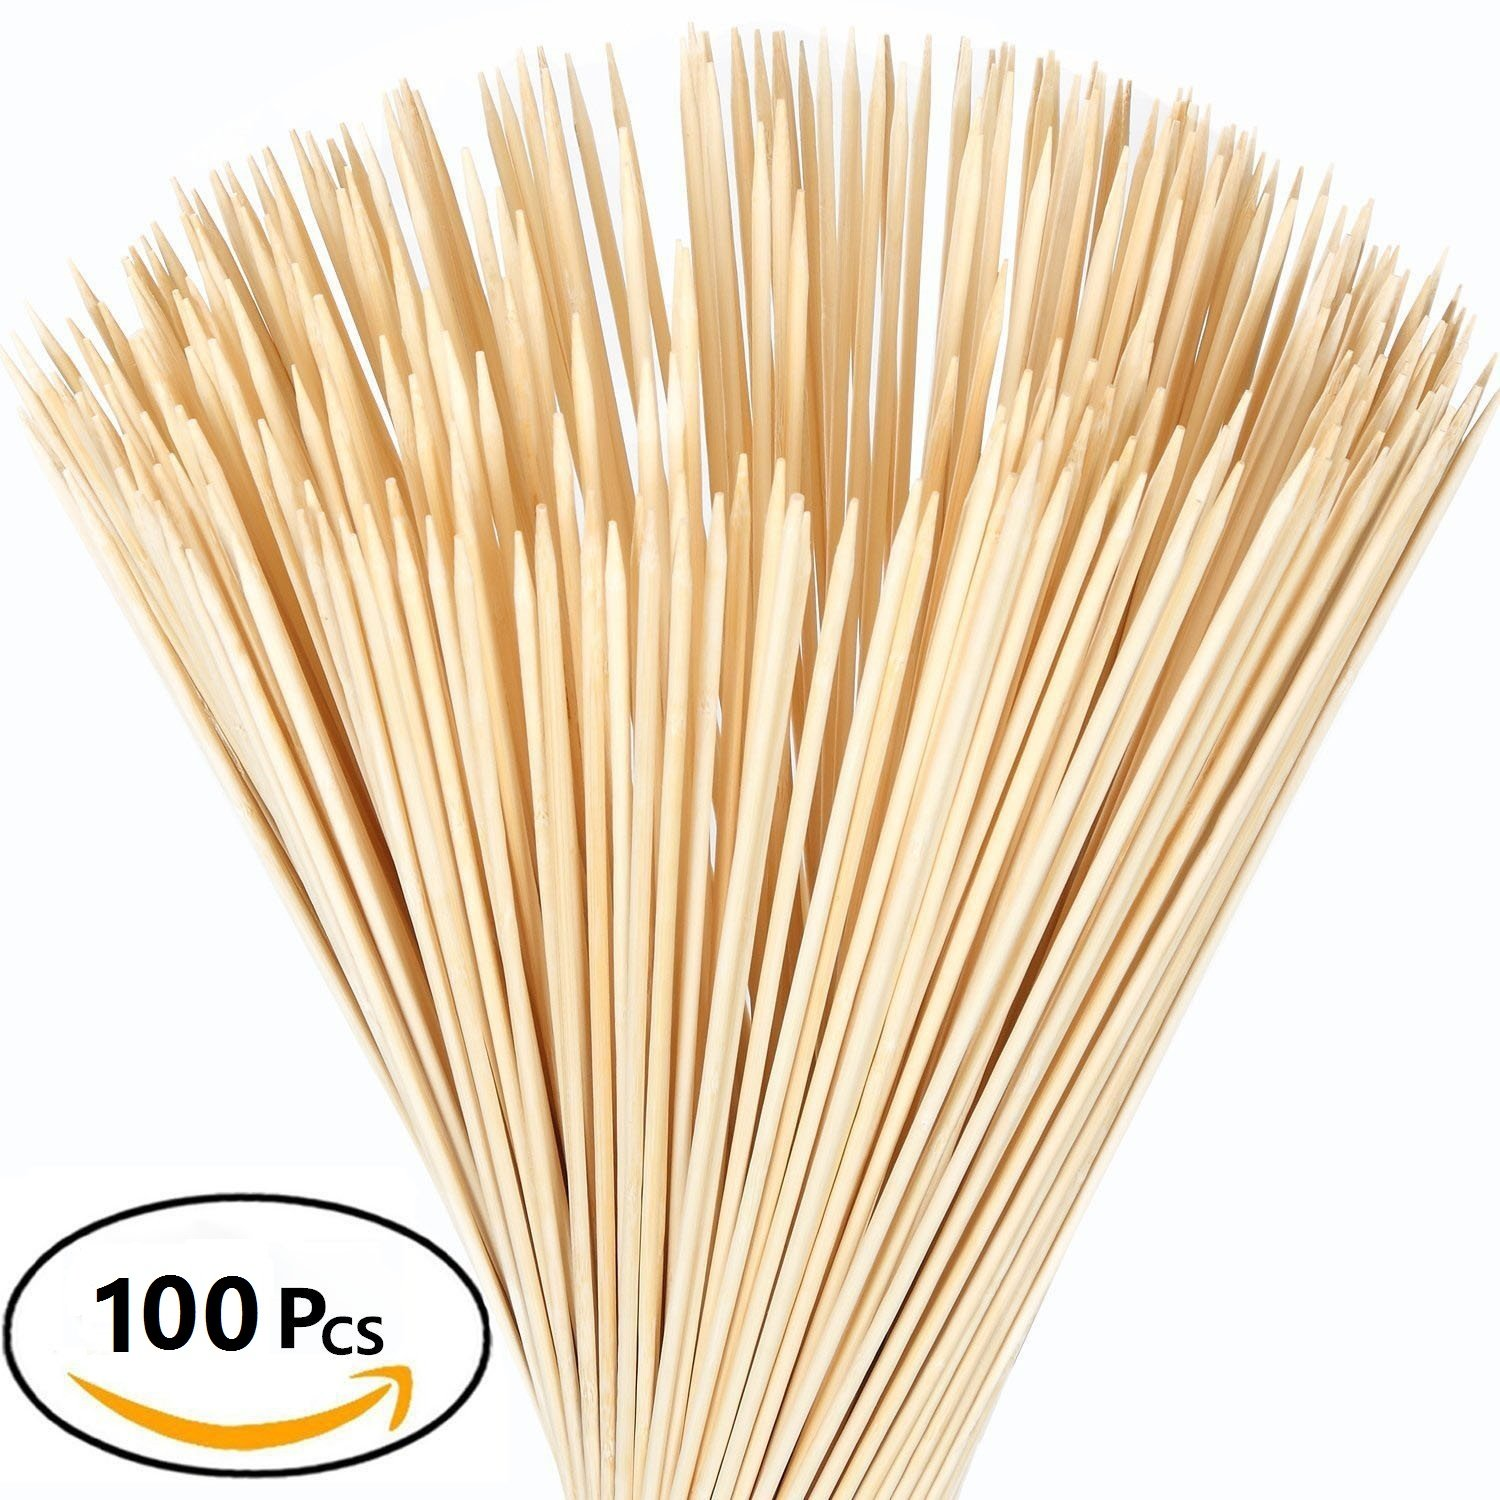 Bamboo Marshmallow Roasting Sticks with 30 Inch 5mm Thick Extra Long Heavy Duty Wooden Skewers,Moonter Barbecue Shrimp Bbq Kabob Shish Kebab Smores Skewers & Hot Dog Forks for Camping ,Party (100)